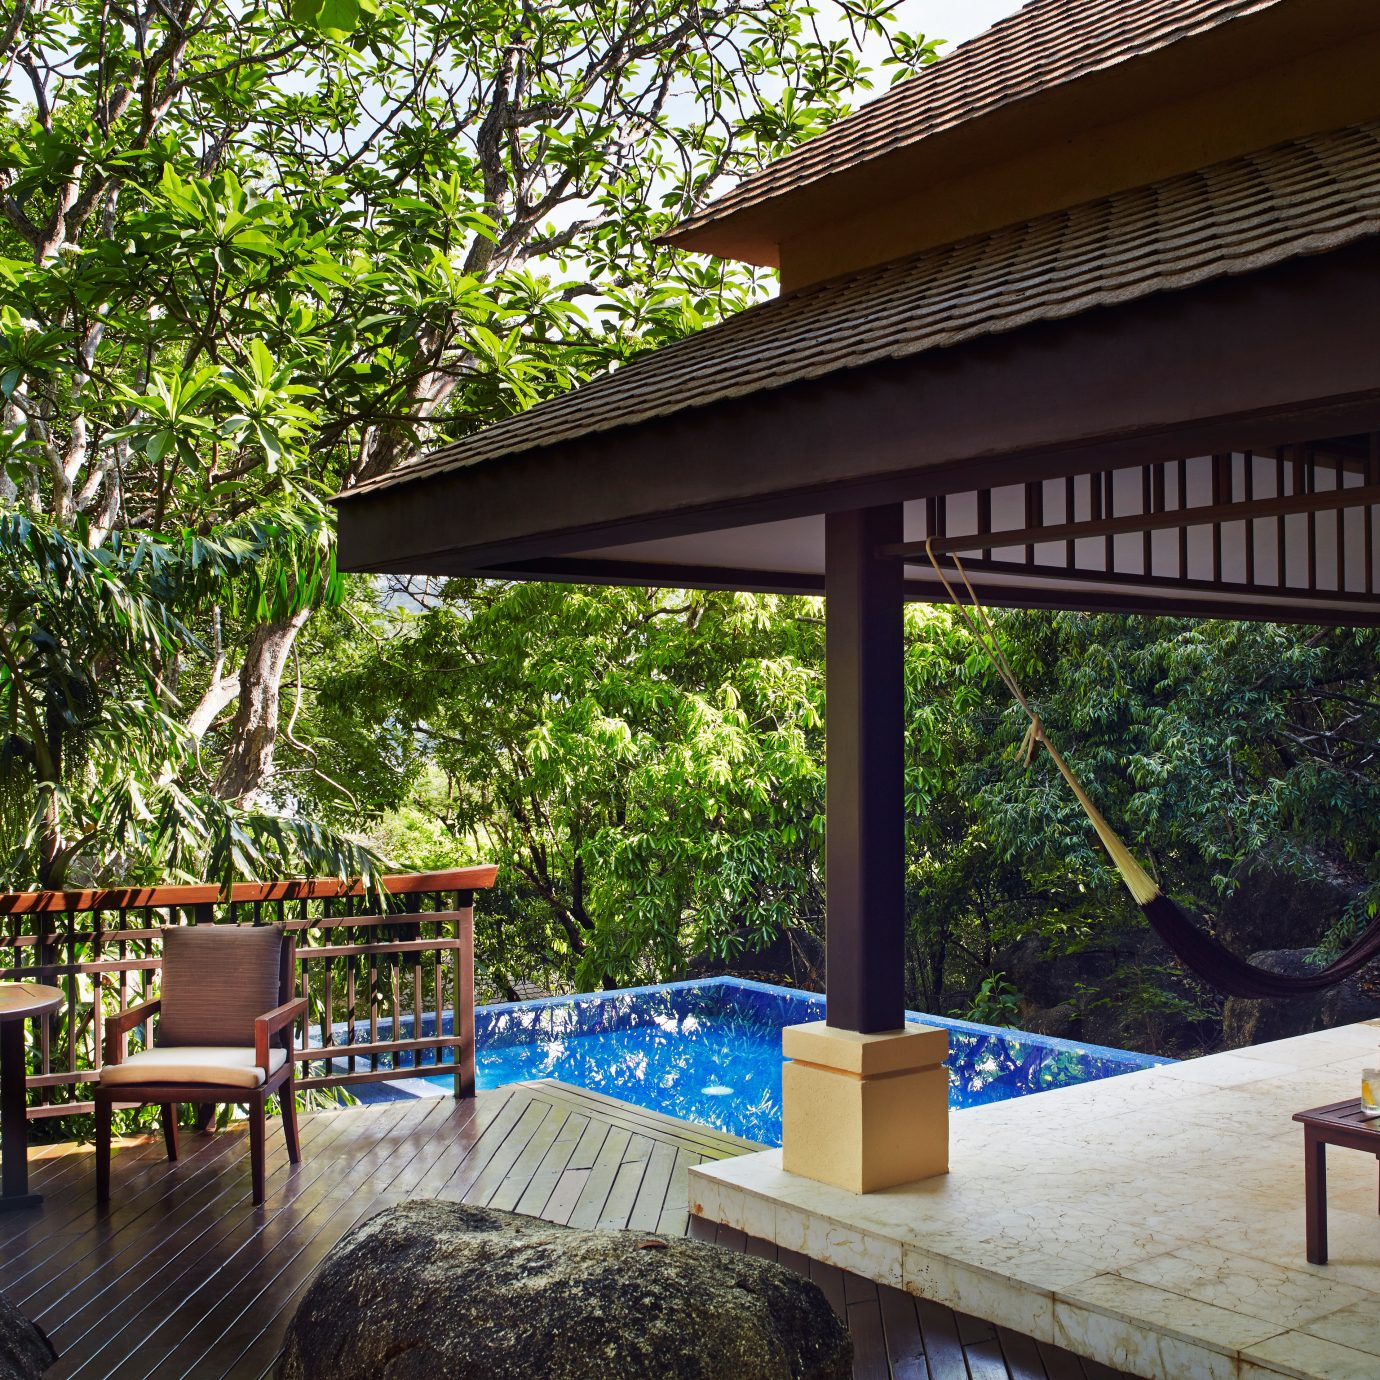 Deck Lounge Luxury Pool Romantic tree property chair building Resort Villa backyard cottage outdoor structure eco hotel Dining porch swimming pool Courtyard